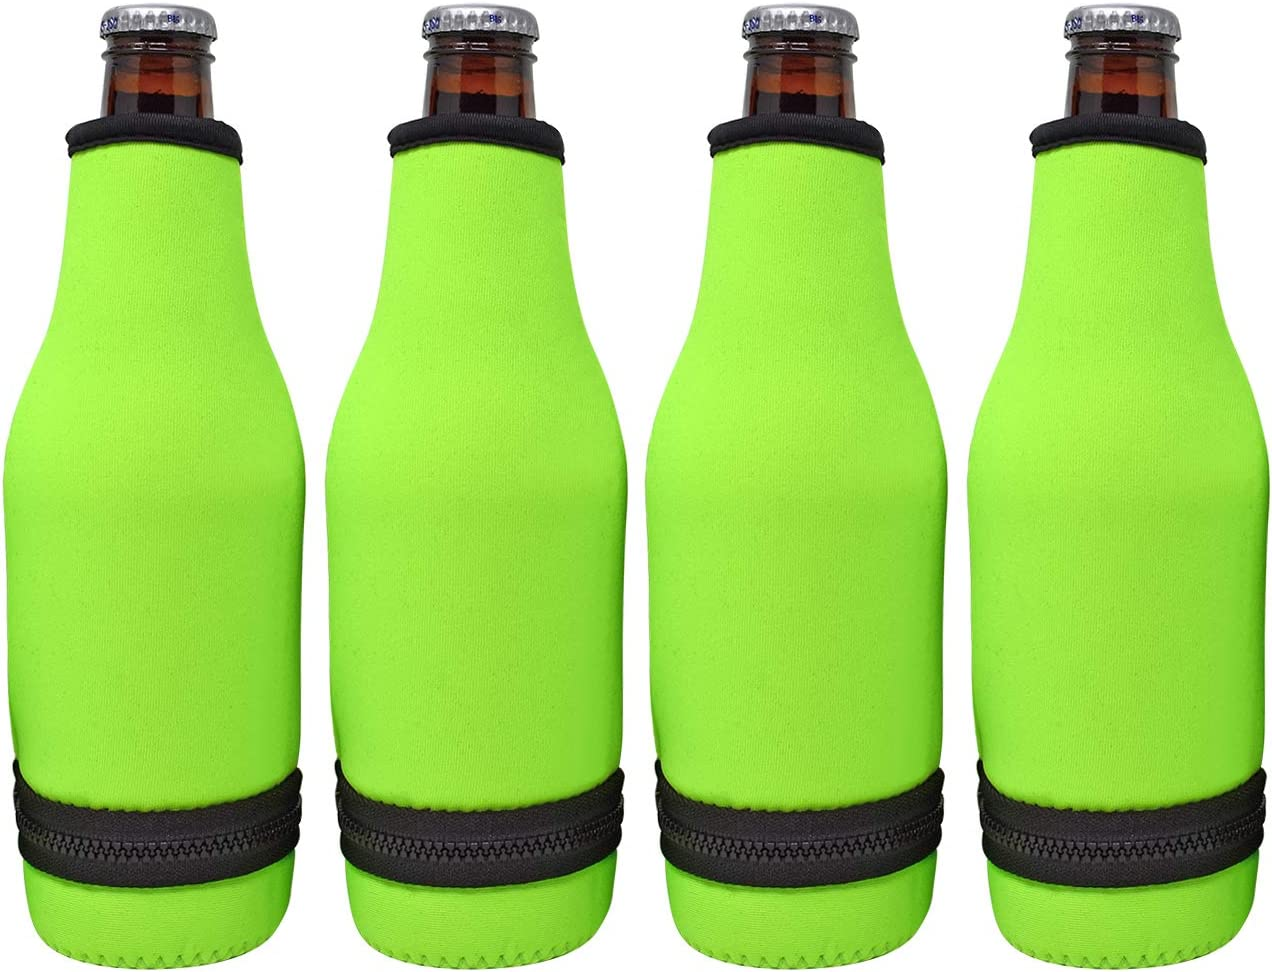 TahoeBay 4 Beer Bottle Sleeves - Easy-On Bottom Zipper - Extra Thick Neoprene Blank Drink Cooler (Lime Green, 4)